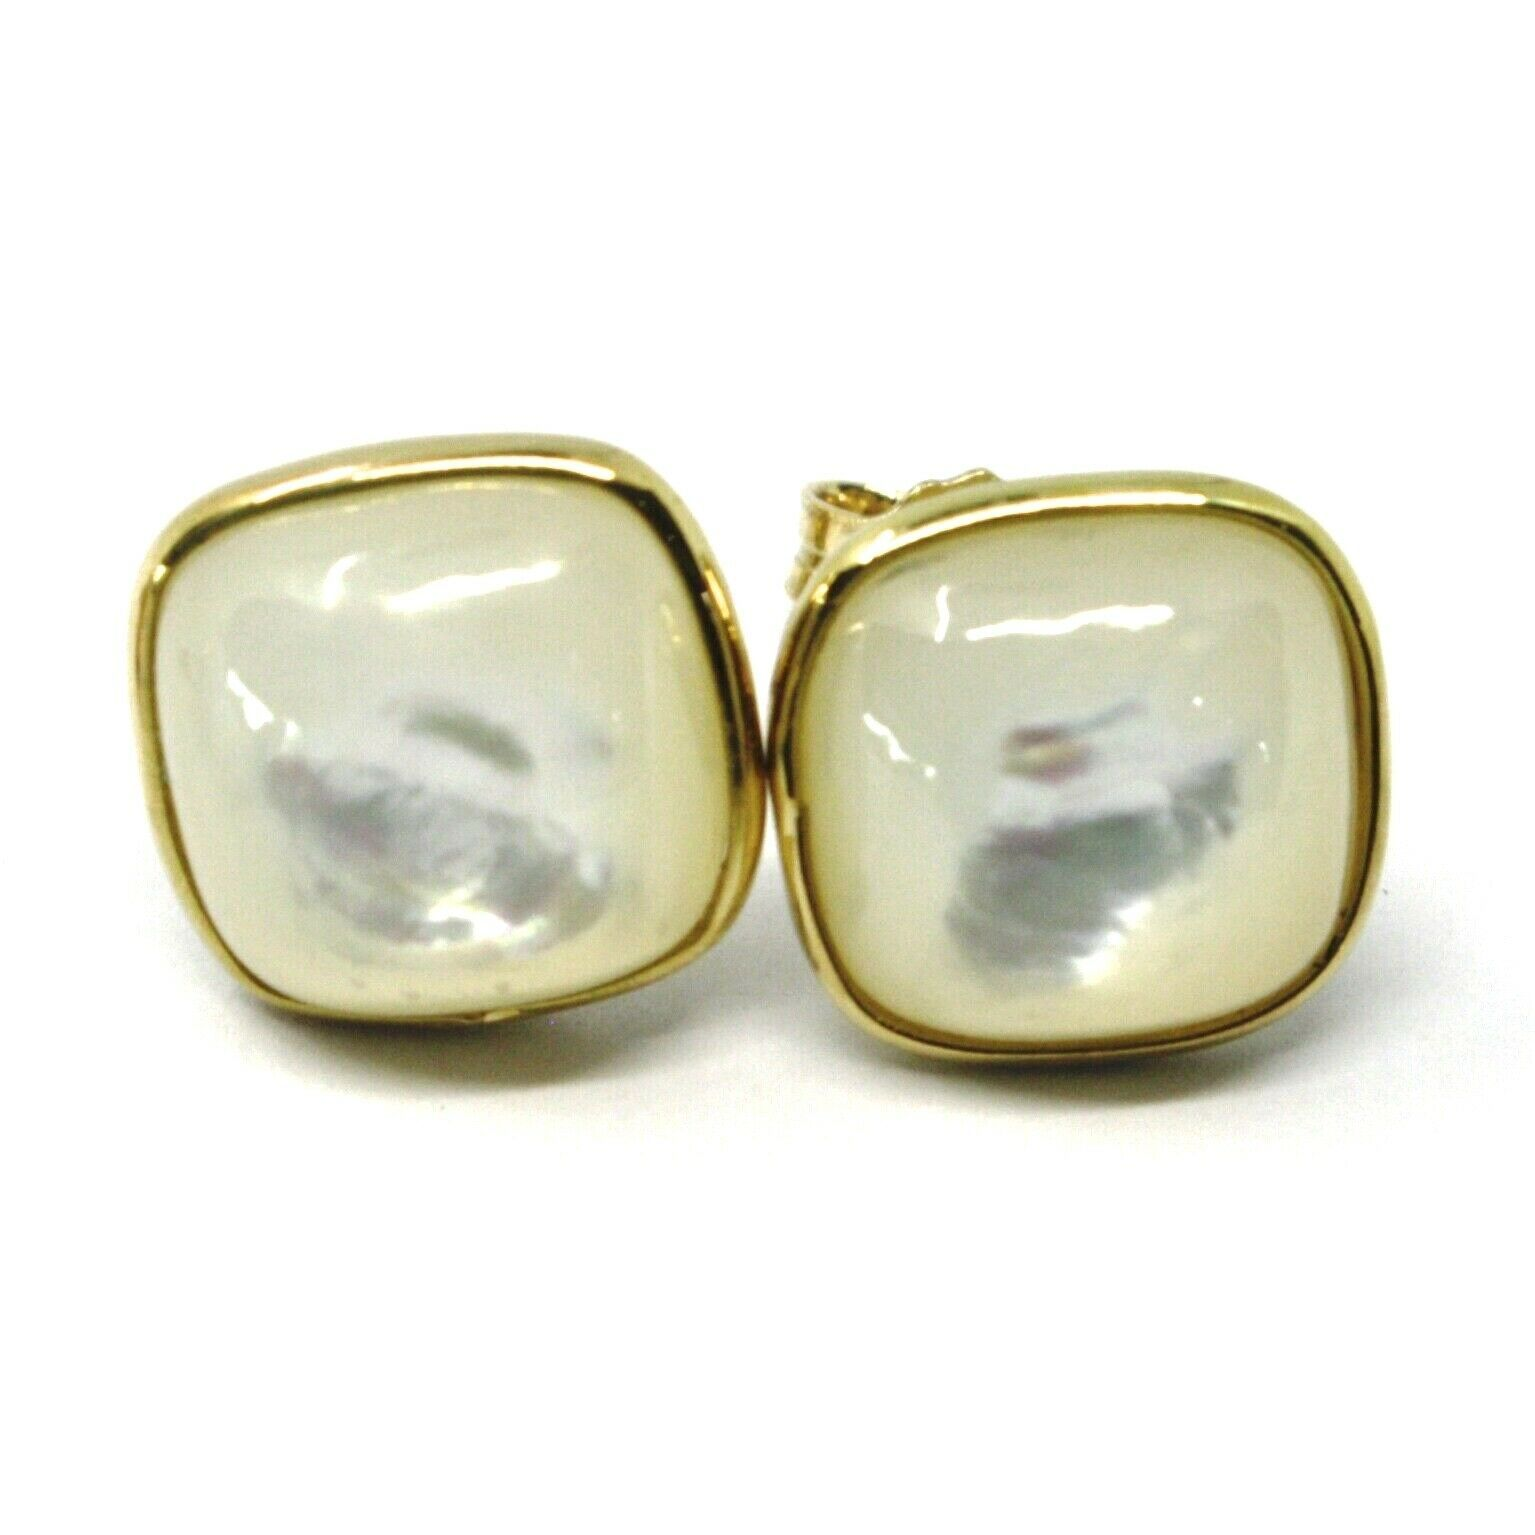 18K YELLOW GOLD BUTTON LOBE EARRINGS, CABOCHON SQUARE MOTHER OF PEARL DIAM. 9mm